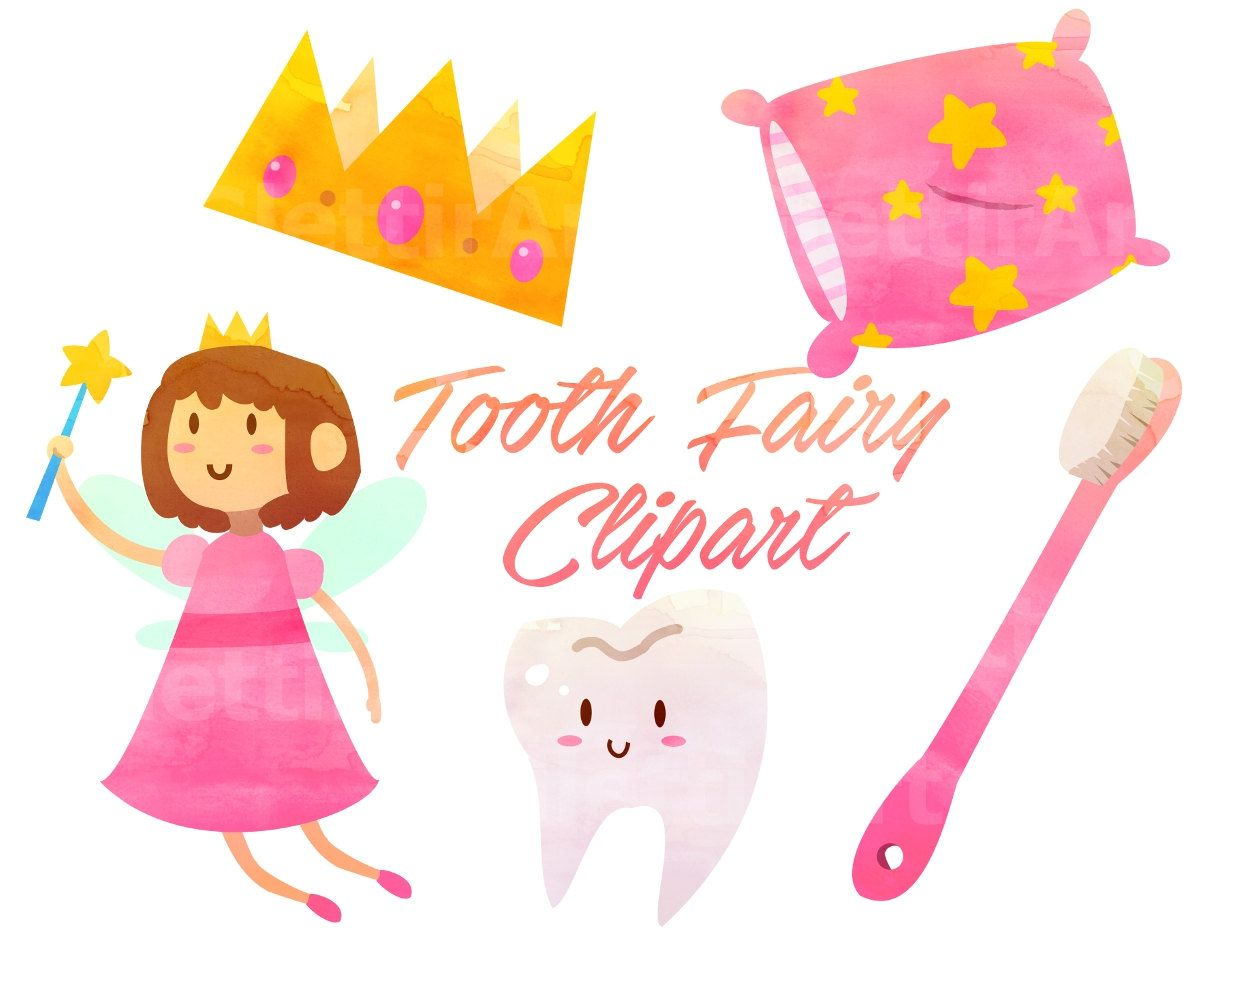 Tooth fairy wand clipart vector free library Toothfairy Clipart, Tooth Fairy Clipart, for personal and ... vector free library